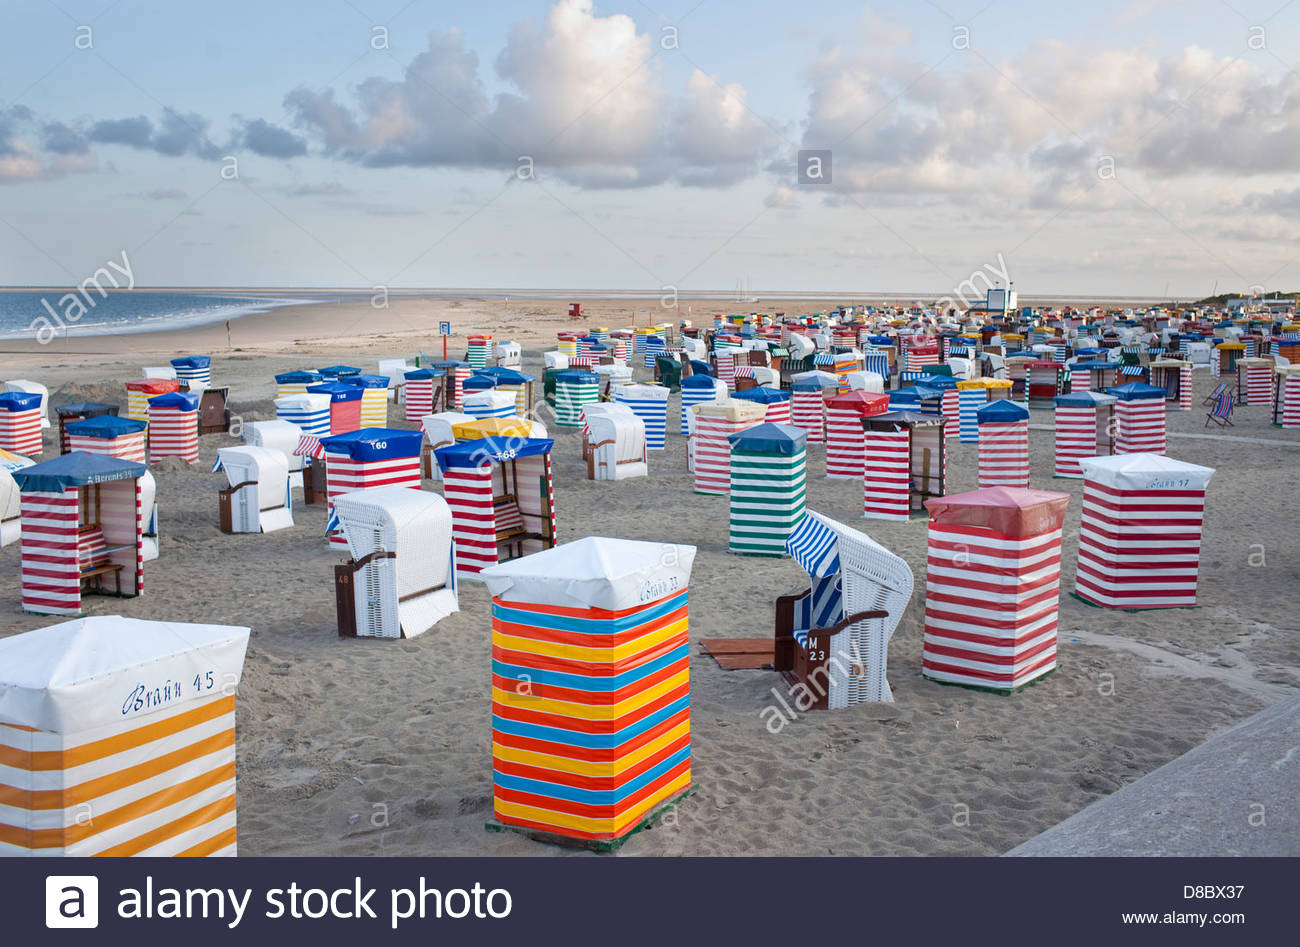 Beach chairs on the beach, North Sea, Borkum, Lower Saxony, Germany - Stock Image